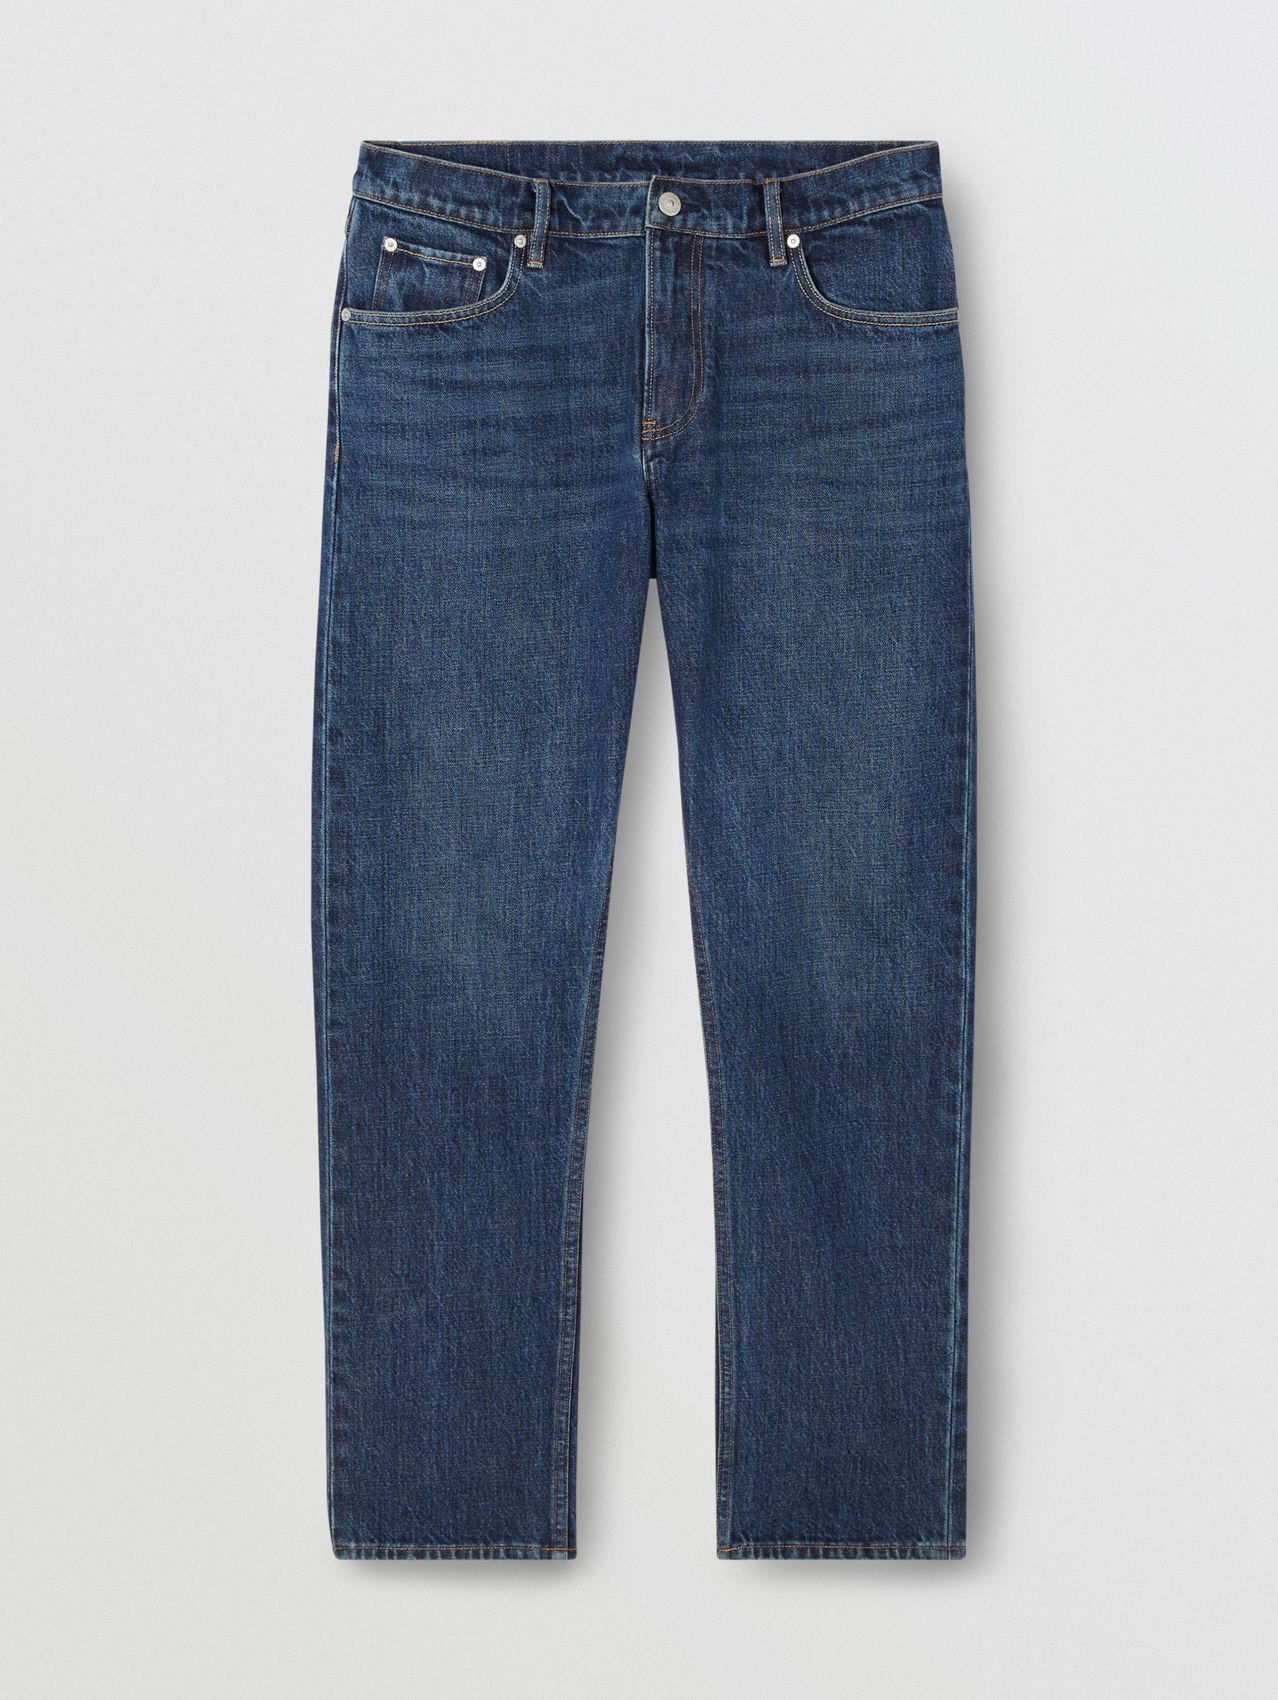 Straight Fit Washed Jeans in Dark Indigo